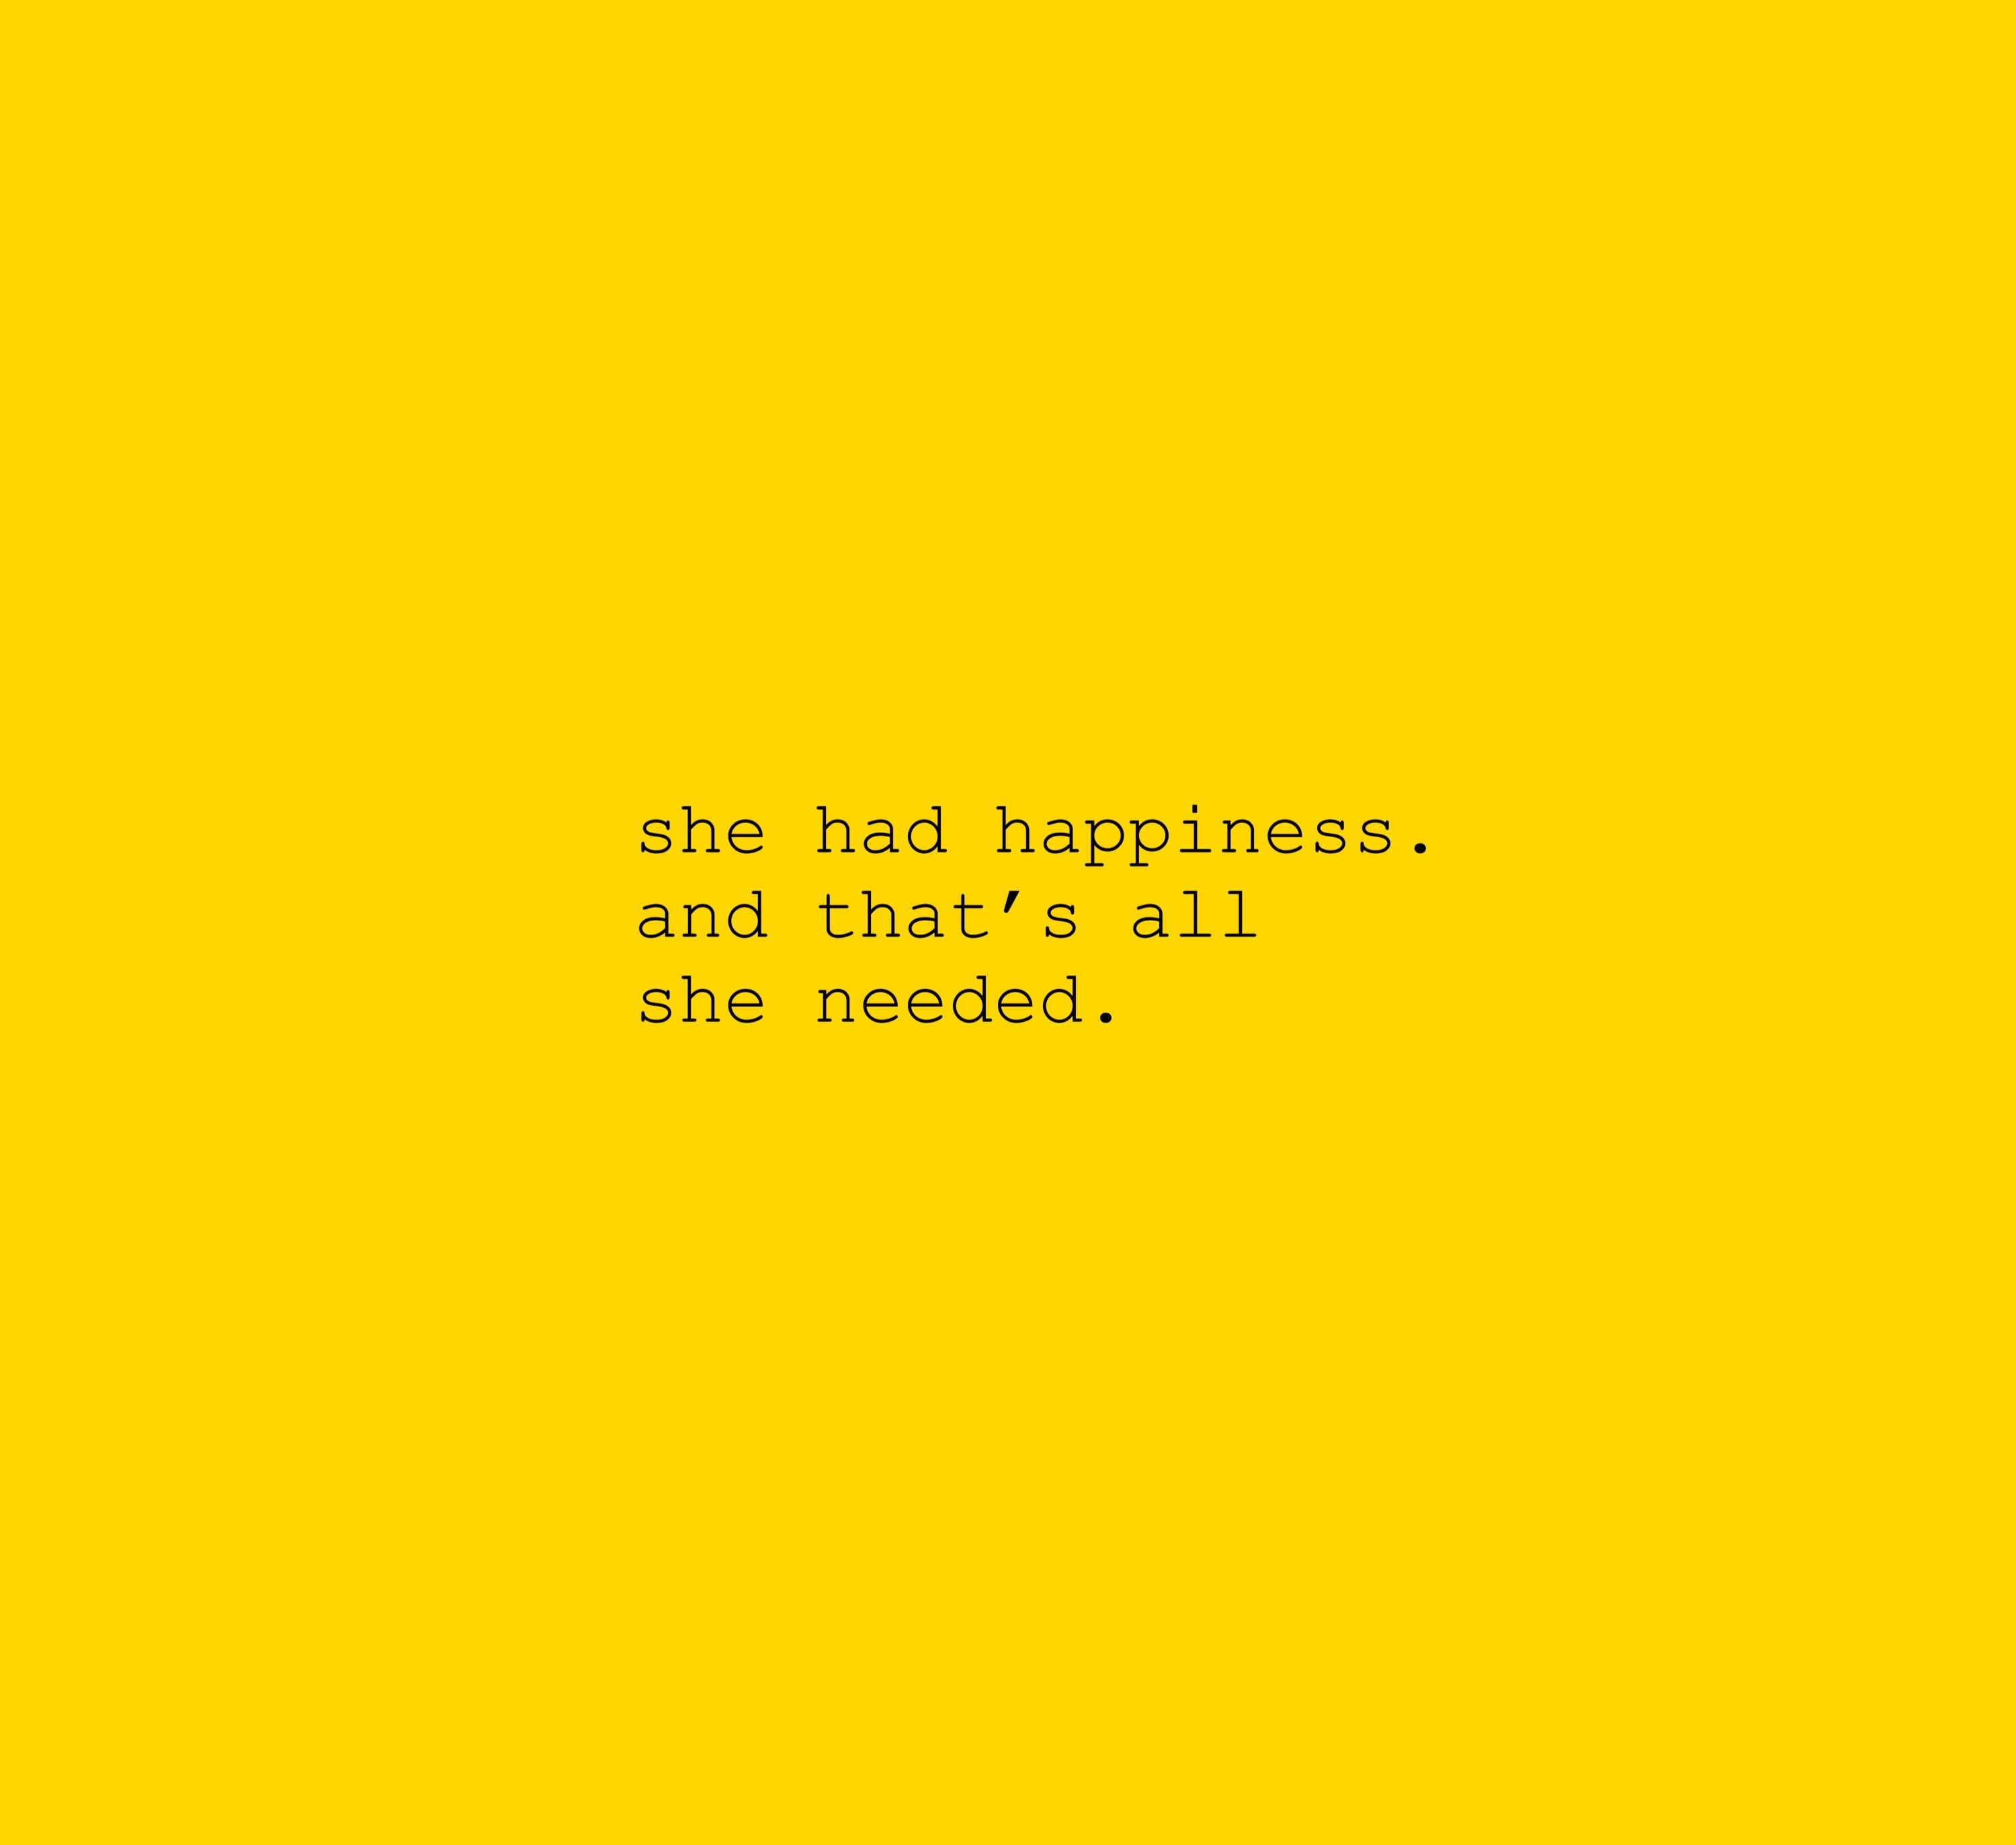 You Make Me Happy Quotes Tumblr: Pin By Krystal Garcia On Yellow Inspo